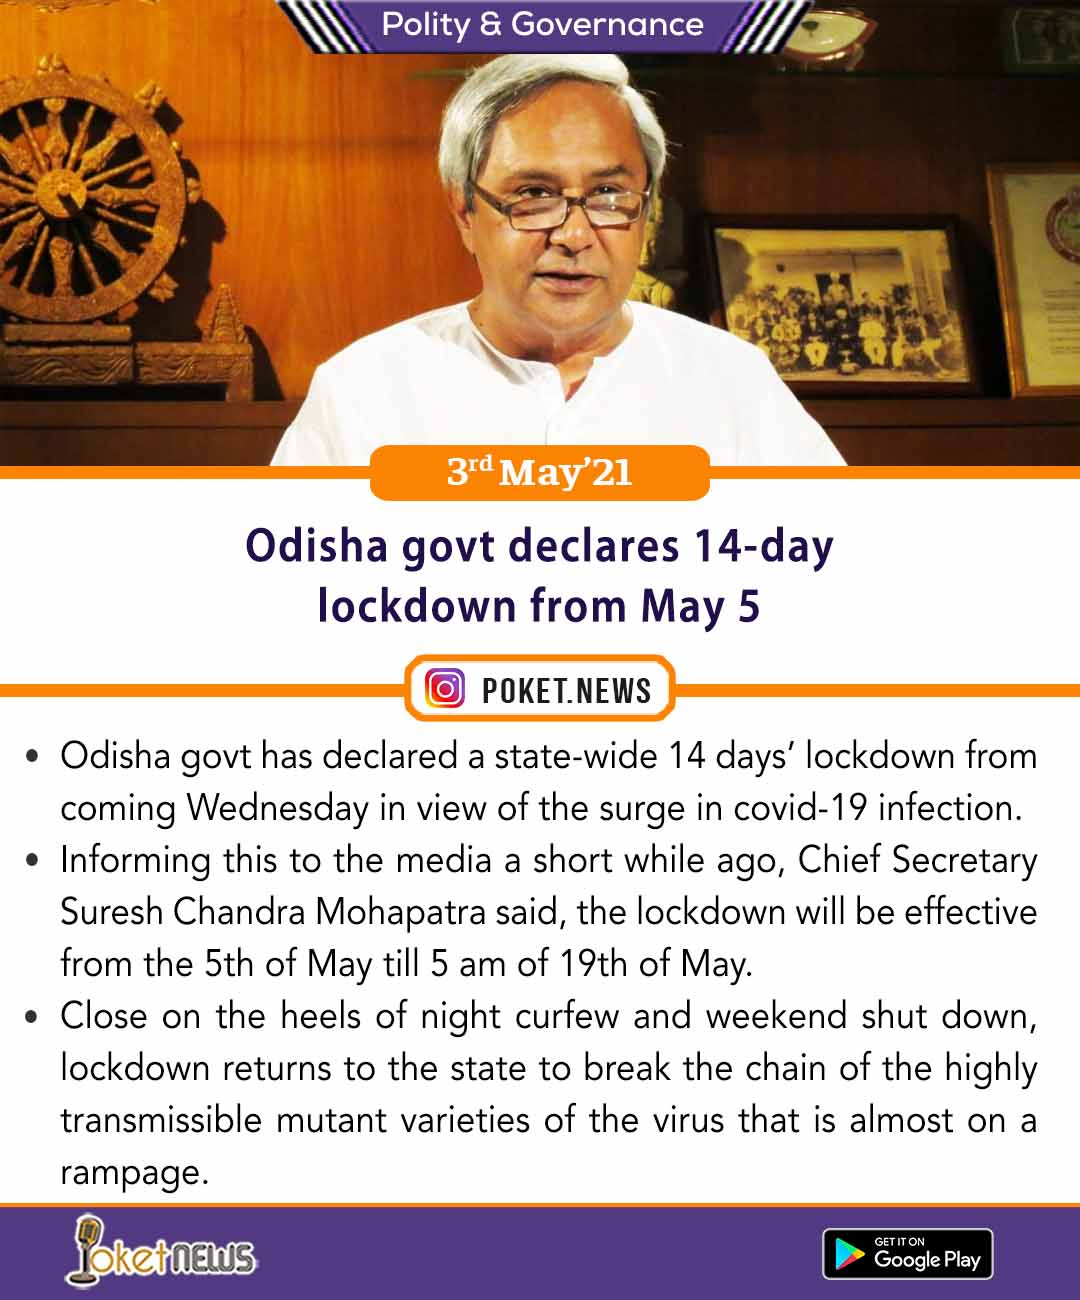 Odisha govt declares 14-day lockdown from May 5